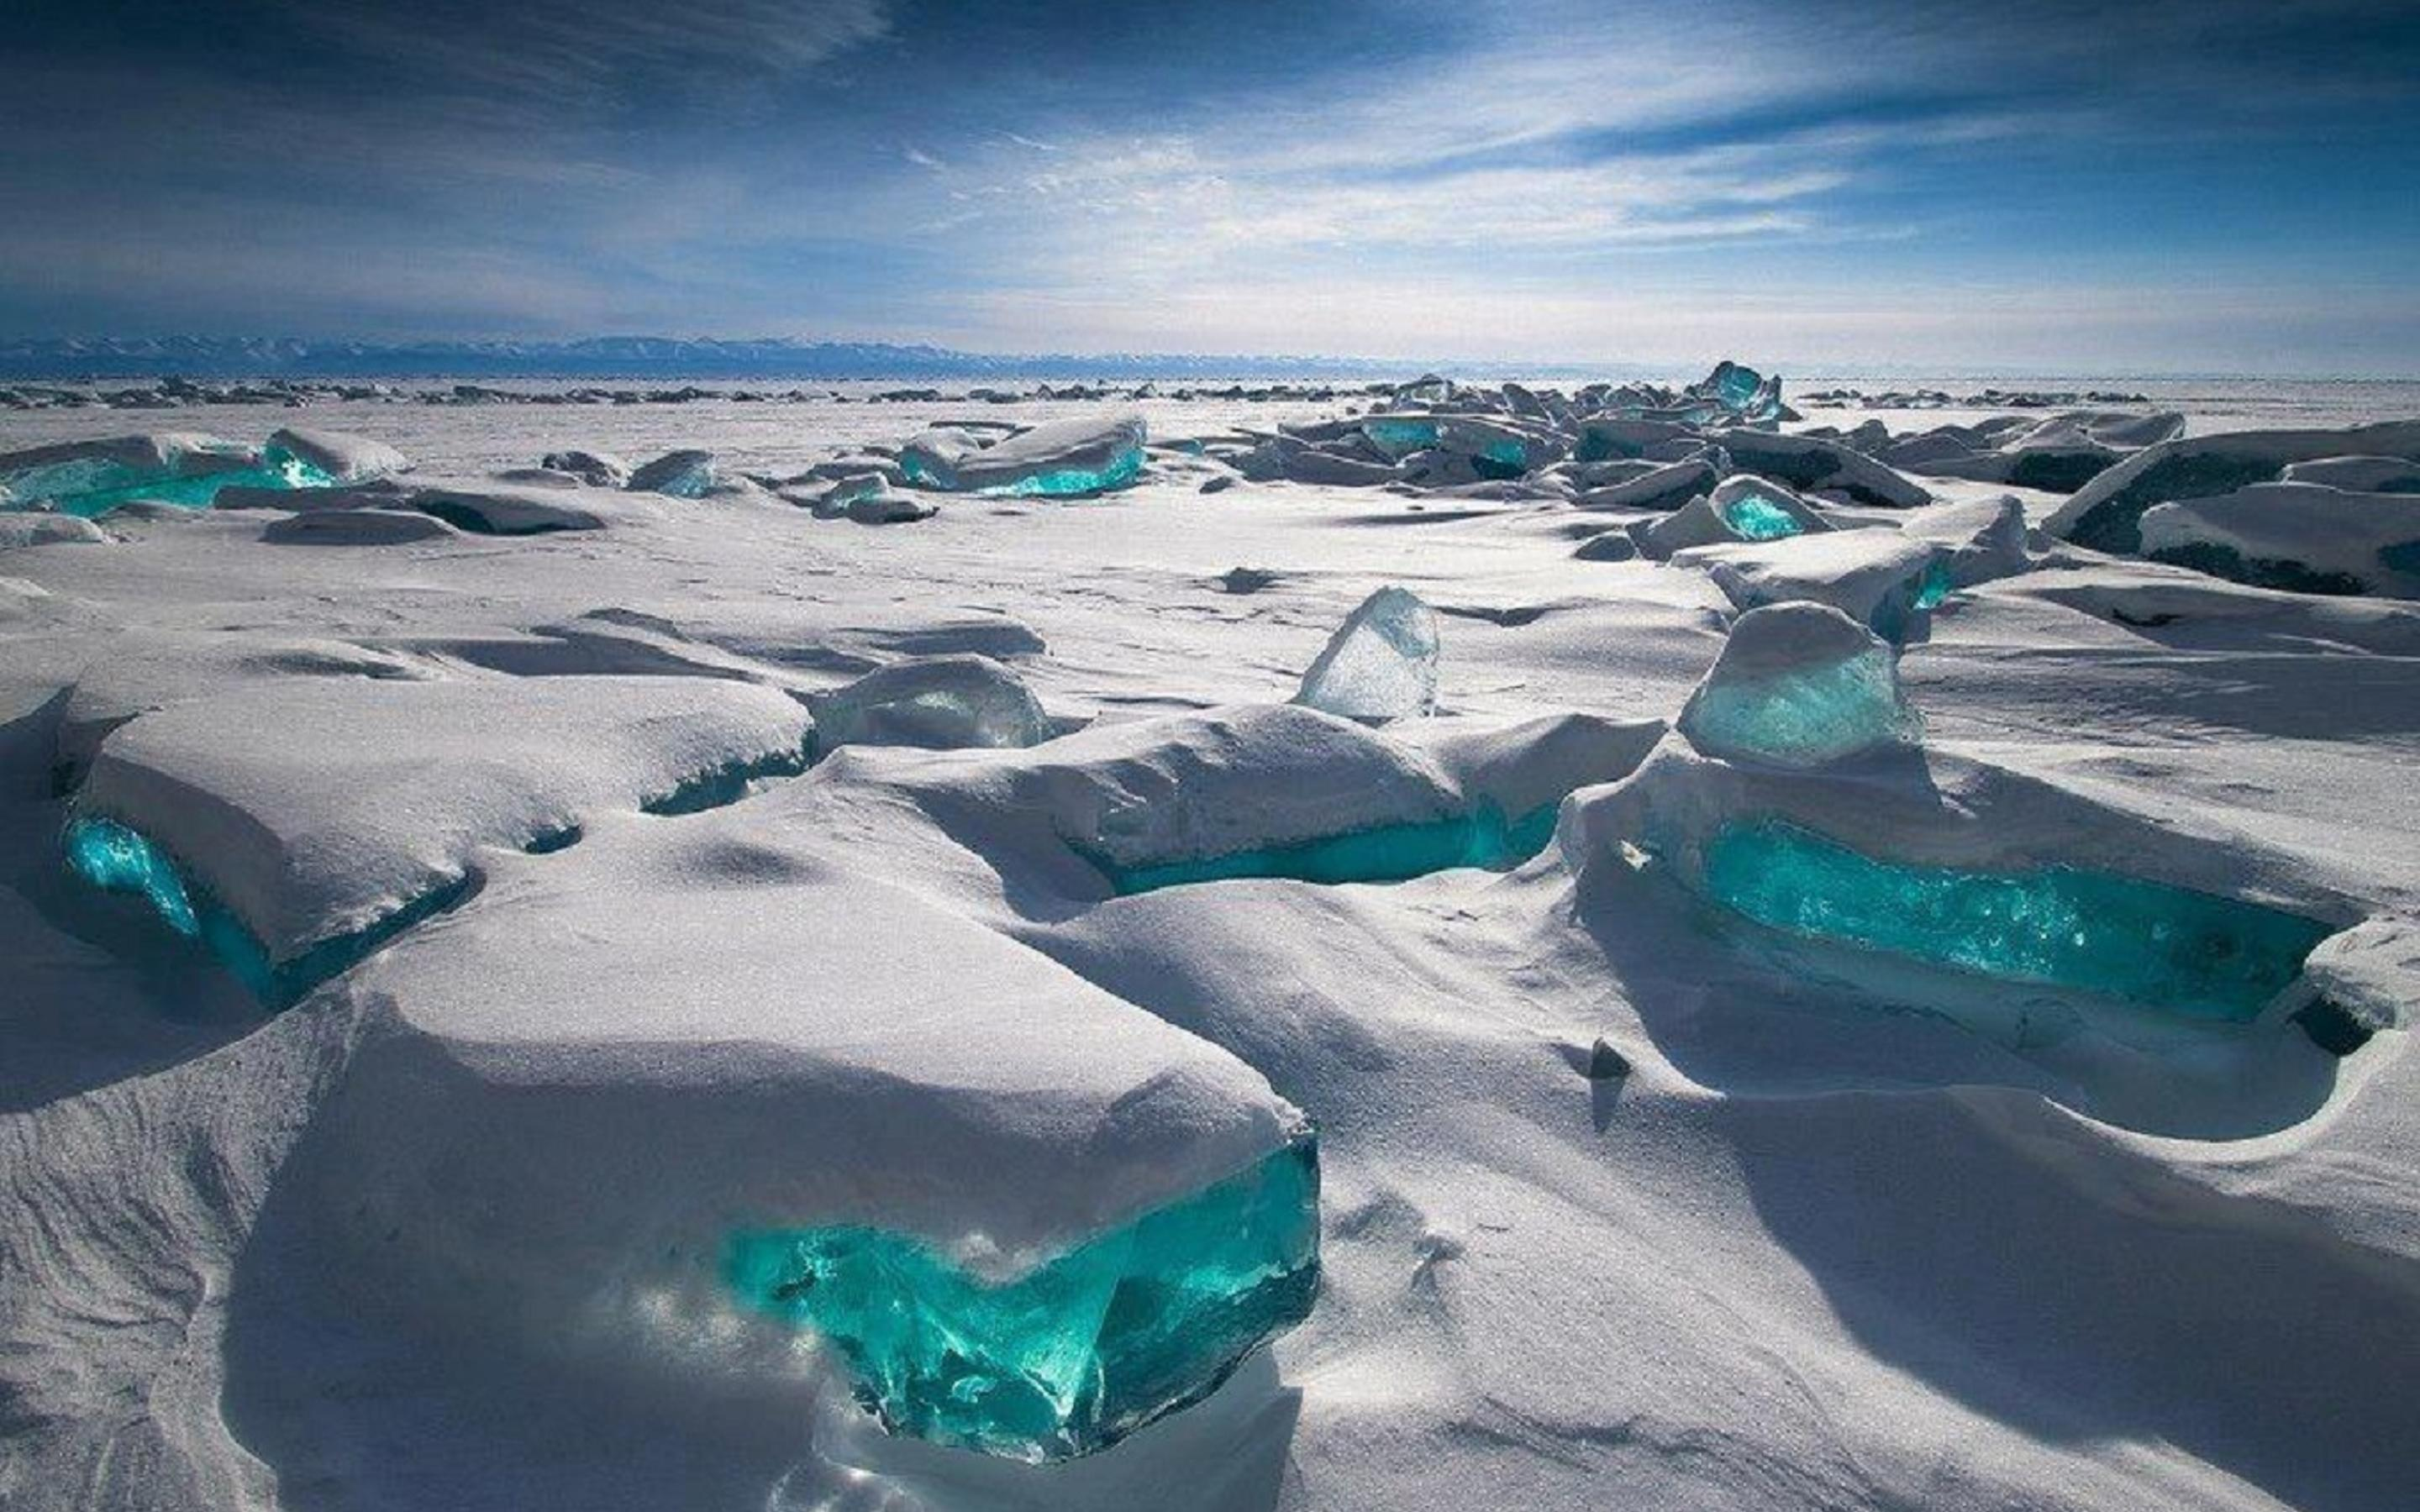 Ice And Snow On The Baikal Lake Wallpaper Download 2880x1800